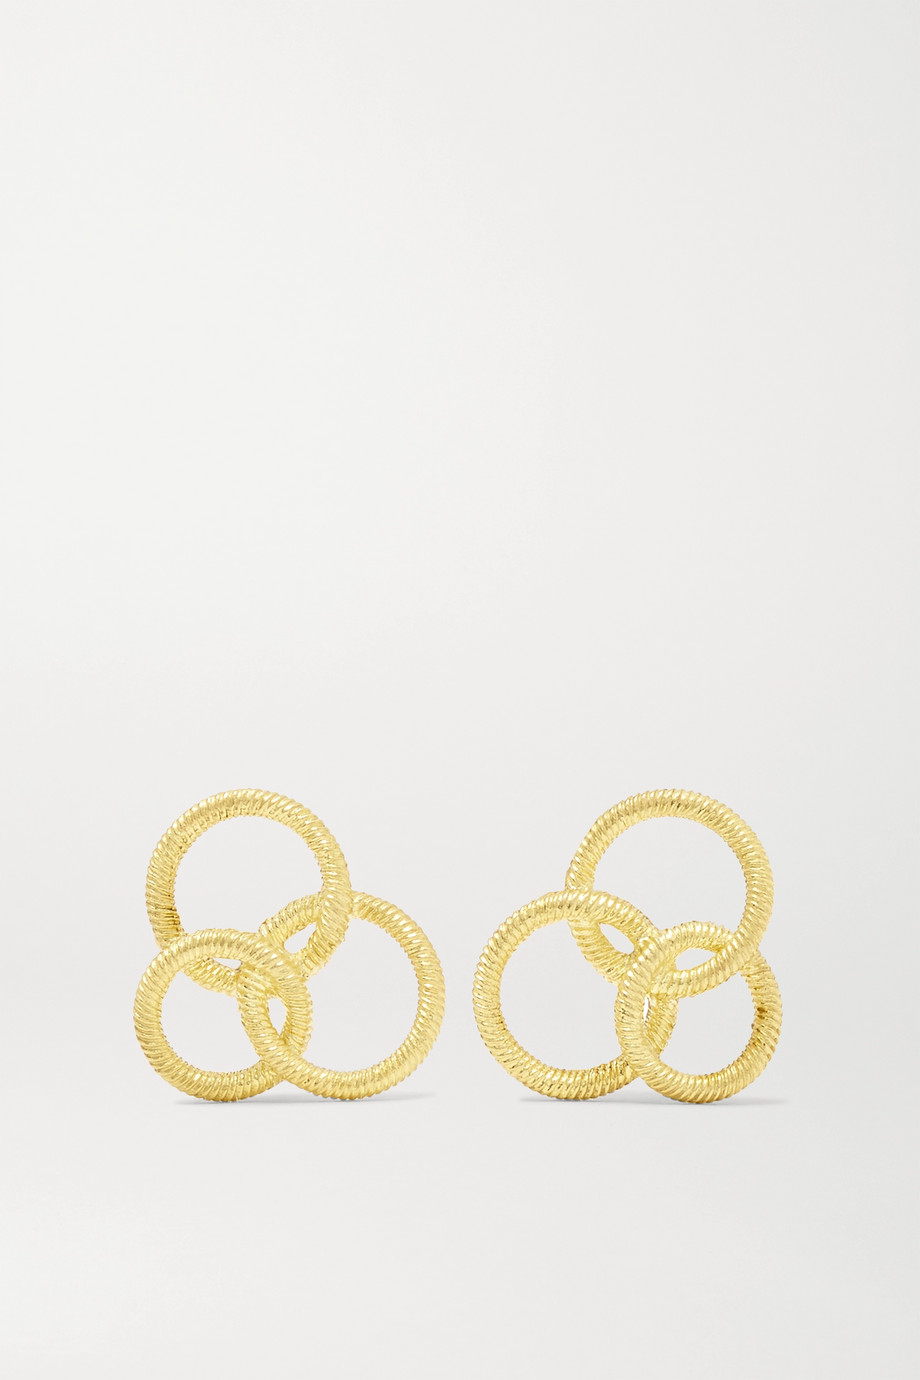 Buccellati Hawaii 18-karat gold earrings